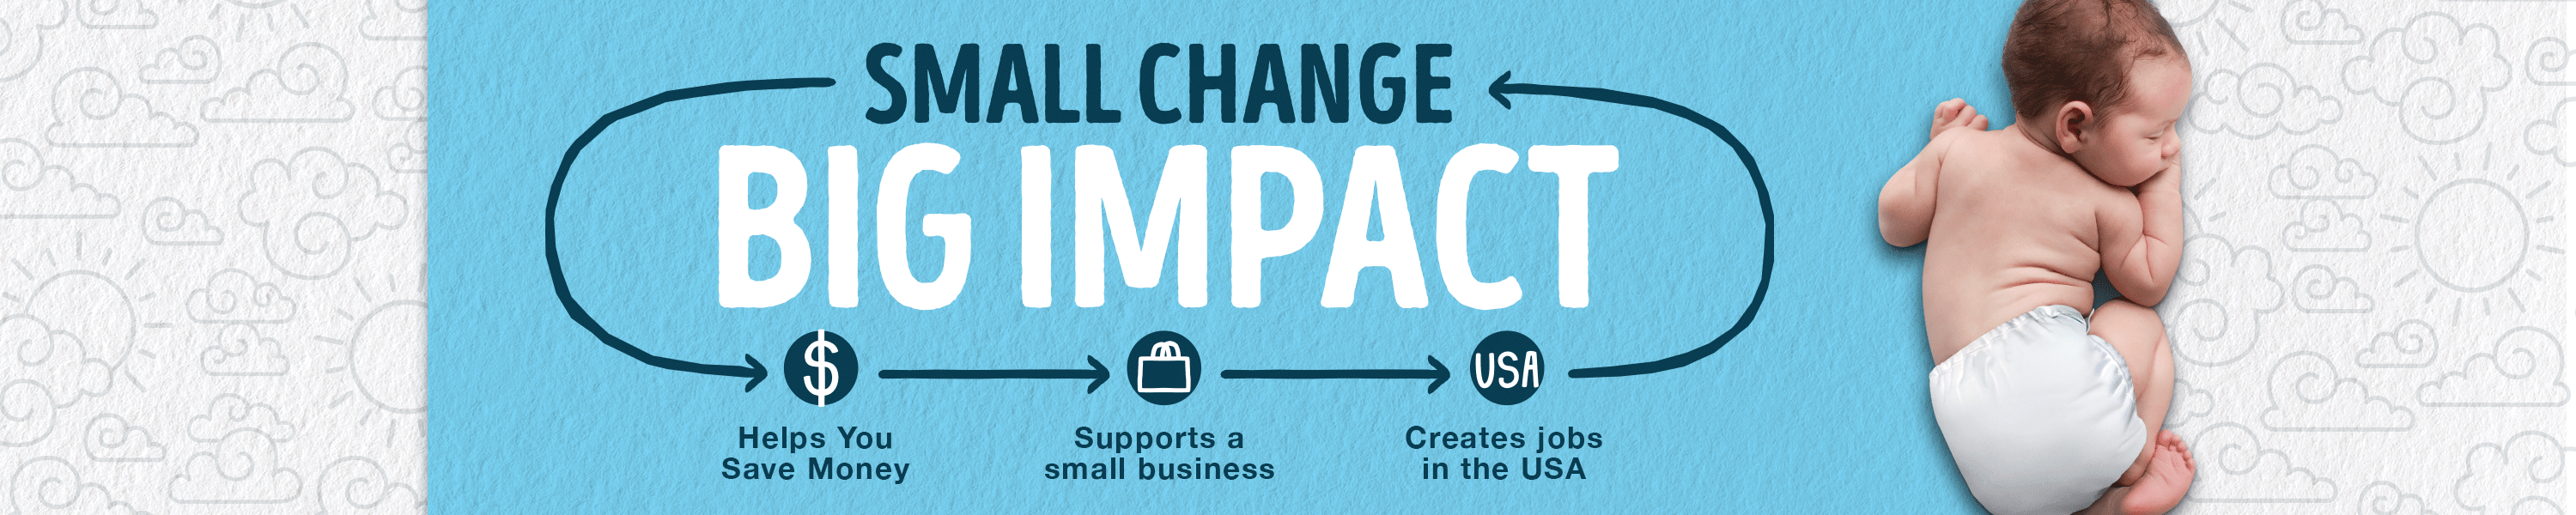 Small change, Big Impact